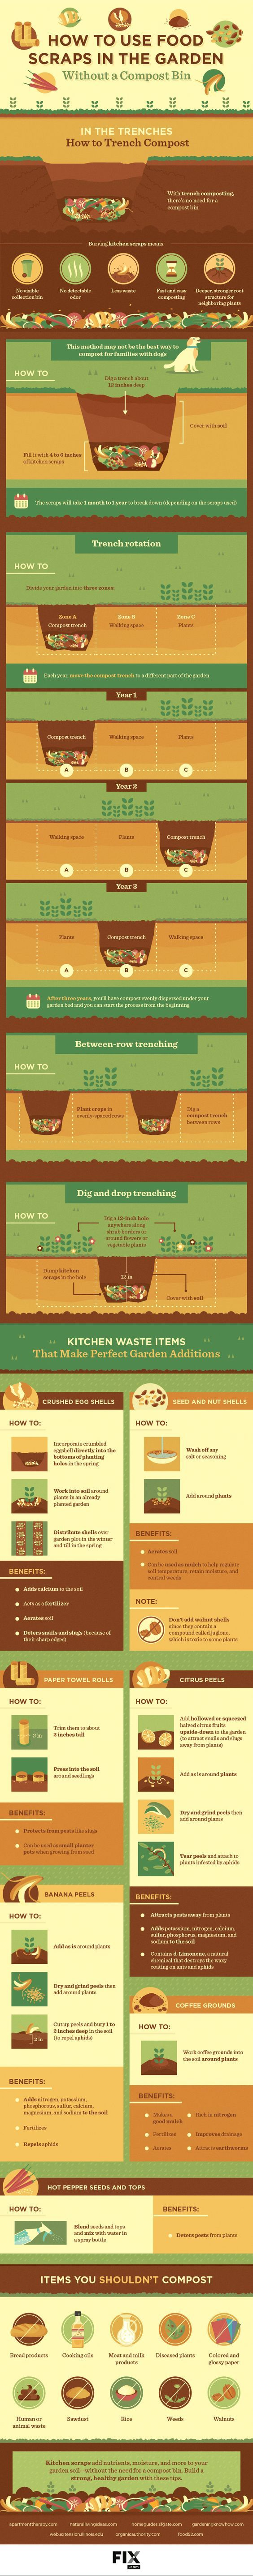 Trench Composting is an easy and inexpensive way to get nutrients into your garden soil when you don't have room for a compost bin. | PreparednessMama